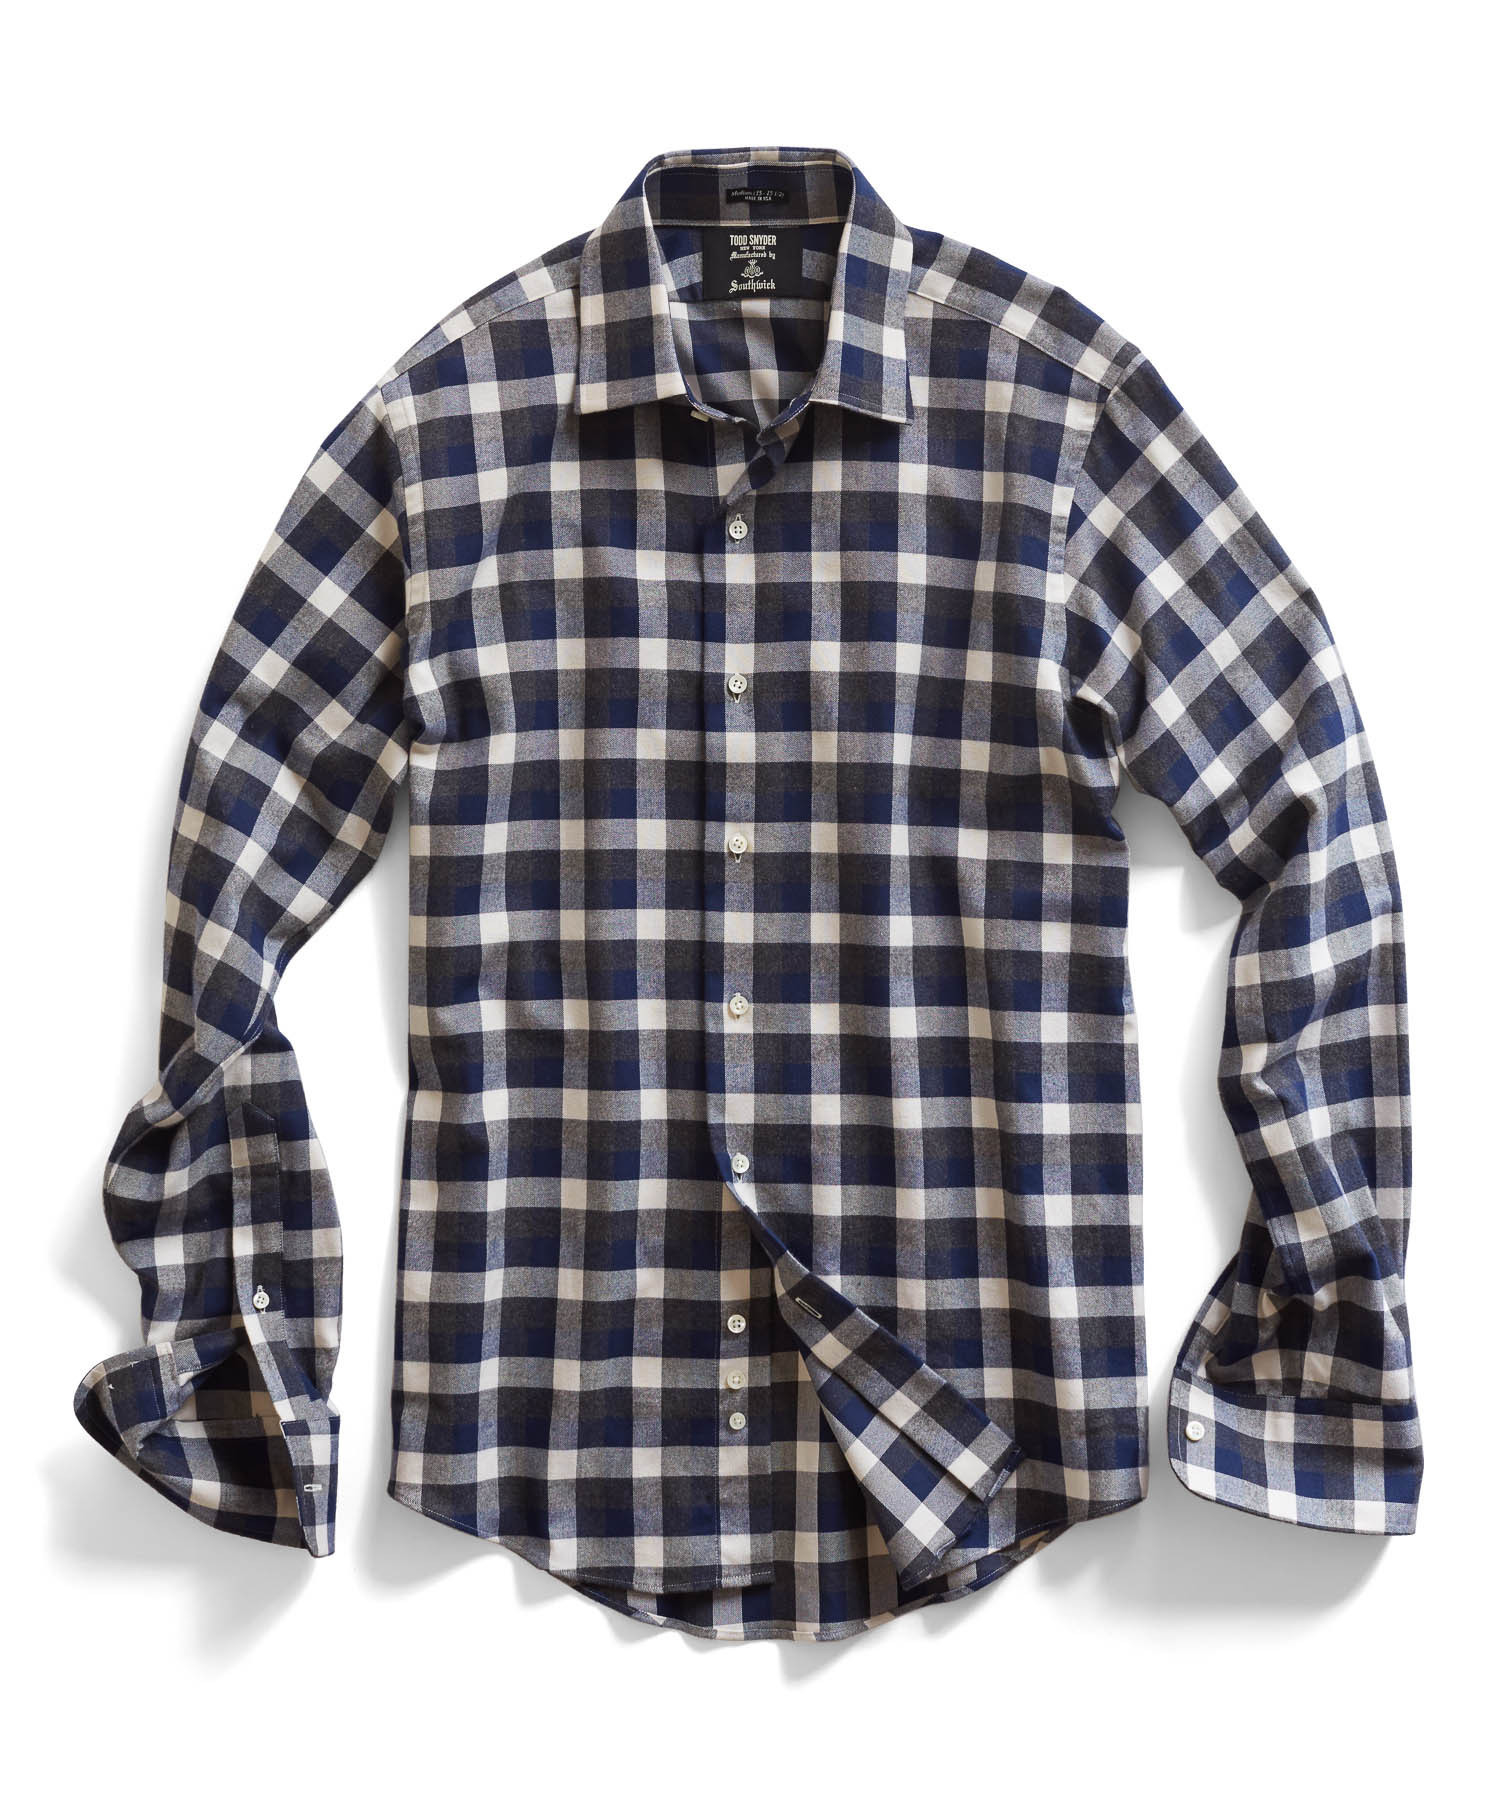 todd snyder dress shirt in grey plaid in gray for men